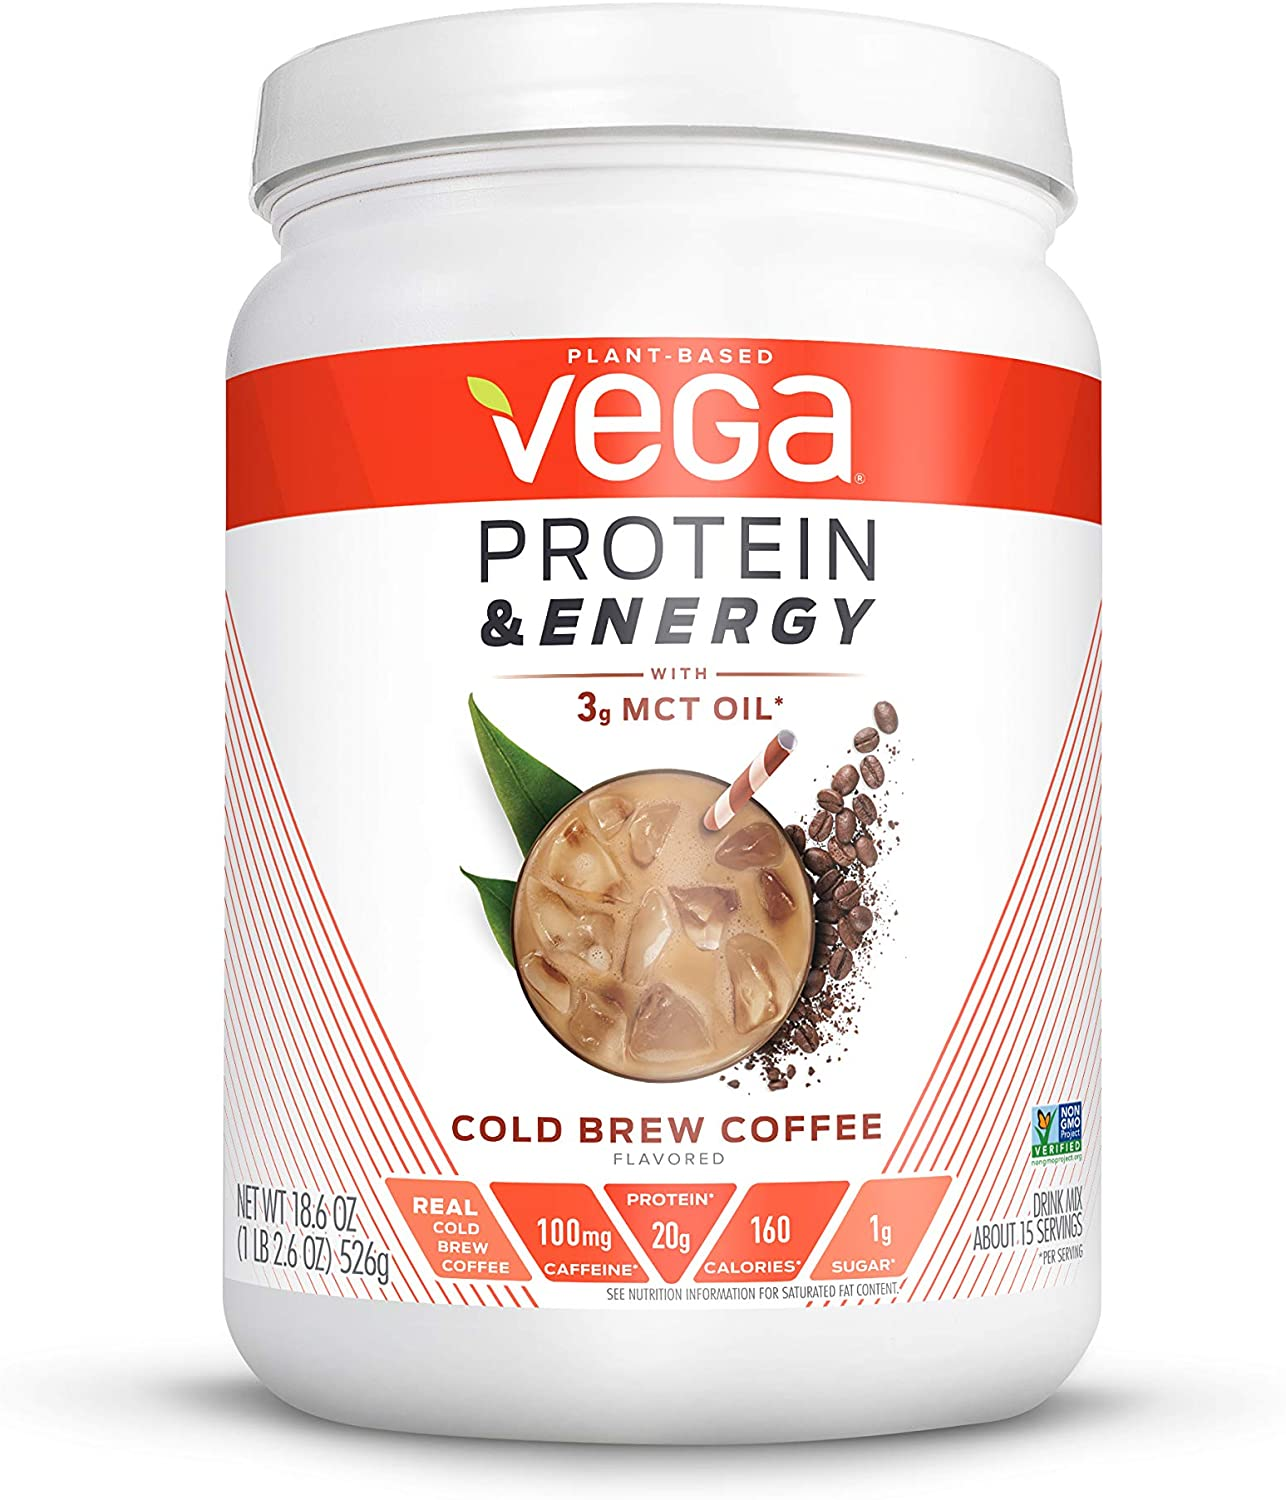 Vega Protein & Energy, Cold Brew Coffee, Plant Based Coffee Protein Powder - Vegan Protein Powder, Keto-Friendly, MCT Oil, Gluten Free, Dairy Free, Soy Free, Non GMO (15 Servings, 1lb 2.6oz)